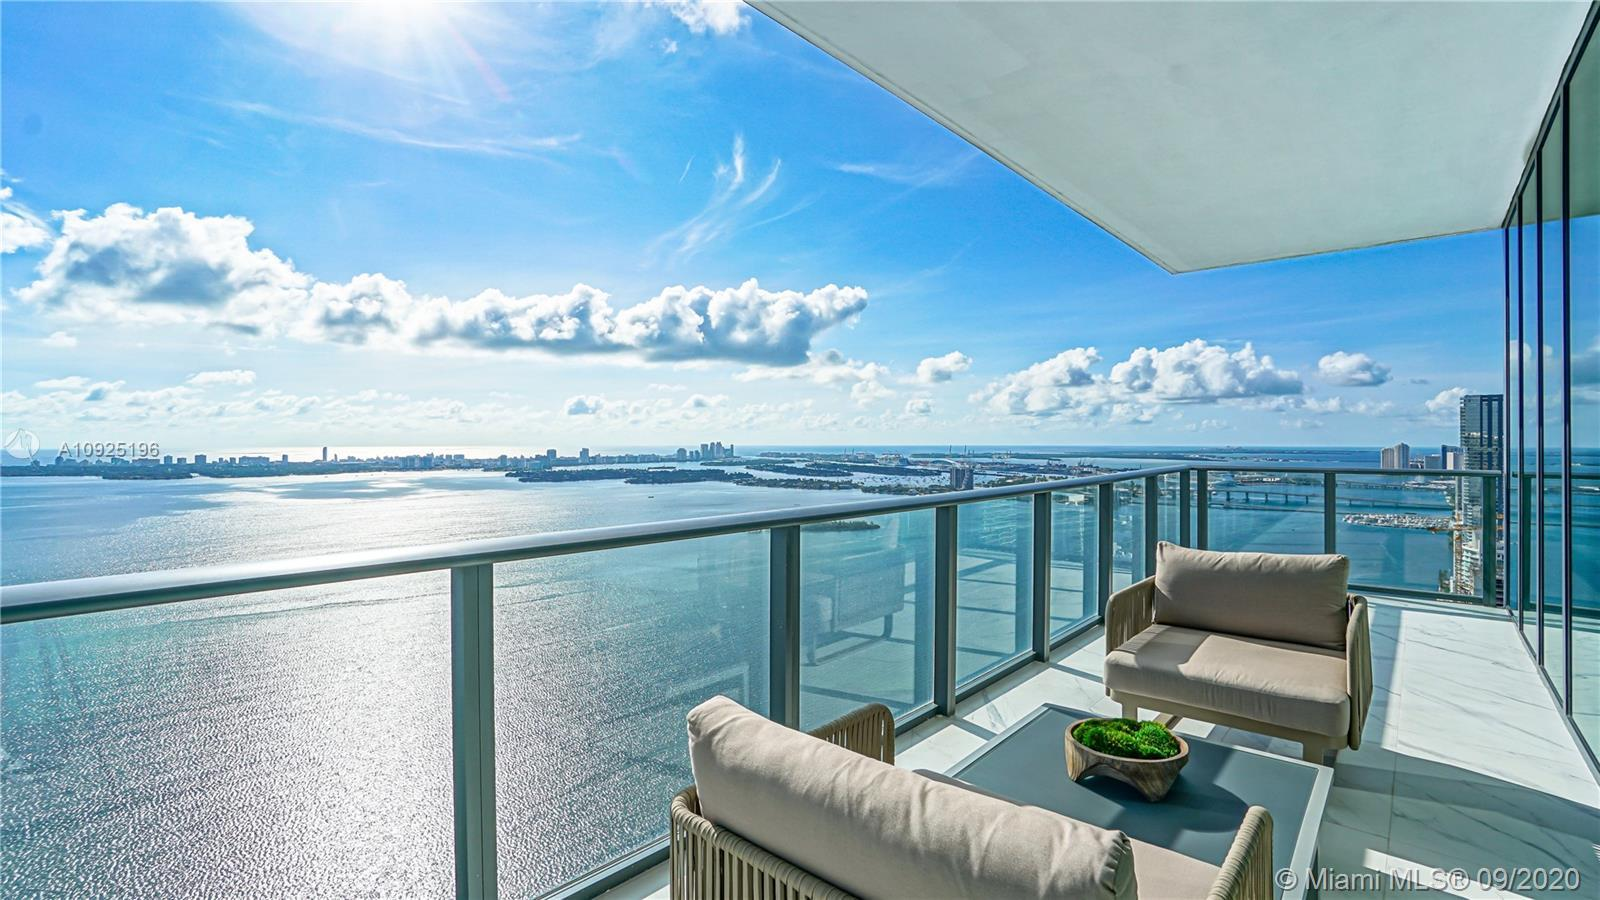 Luxury has been re-imagined in this direct bay front sky Penthouse fully turnkey & finely equipped b